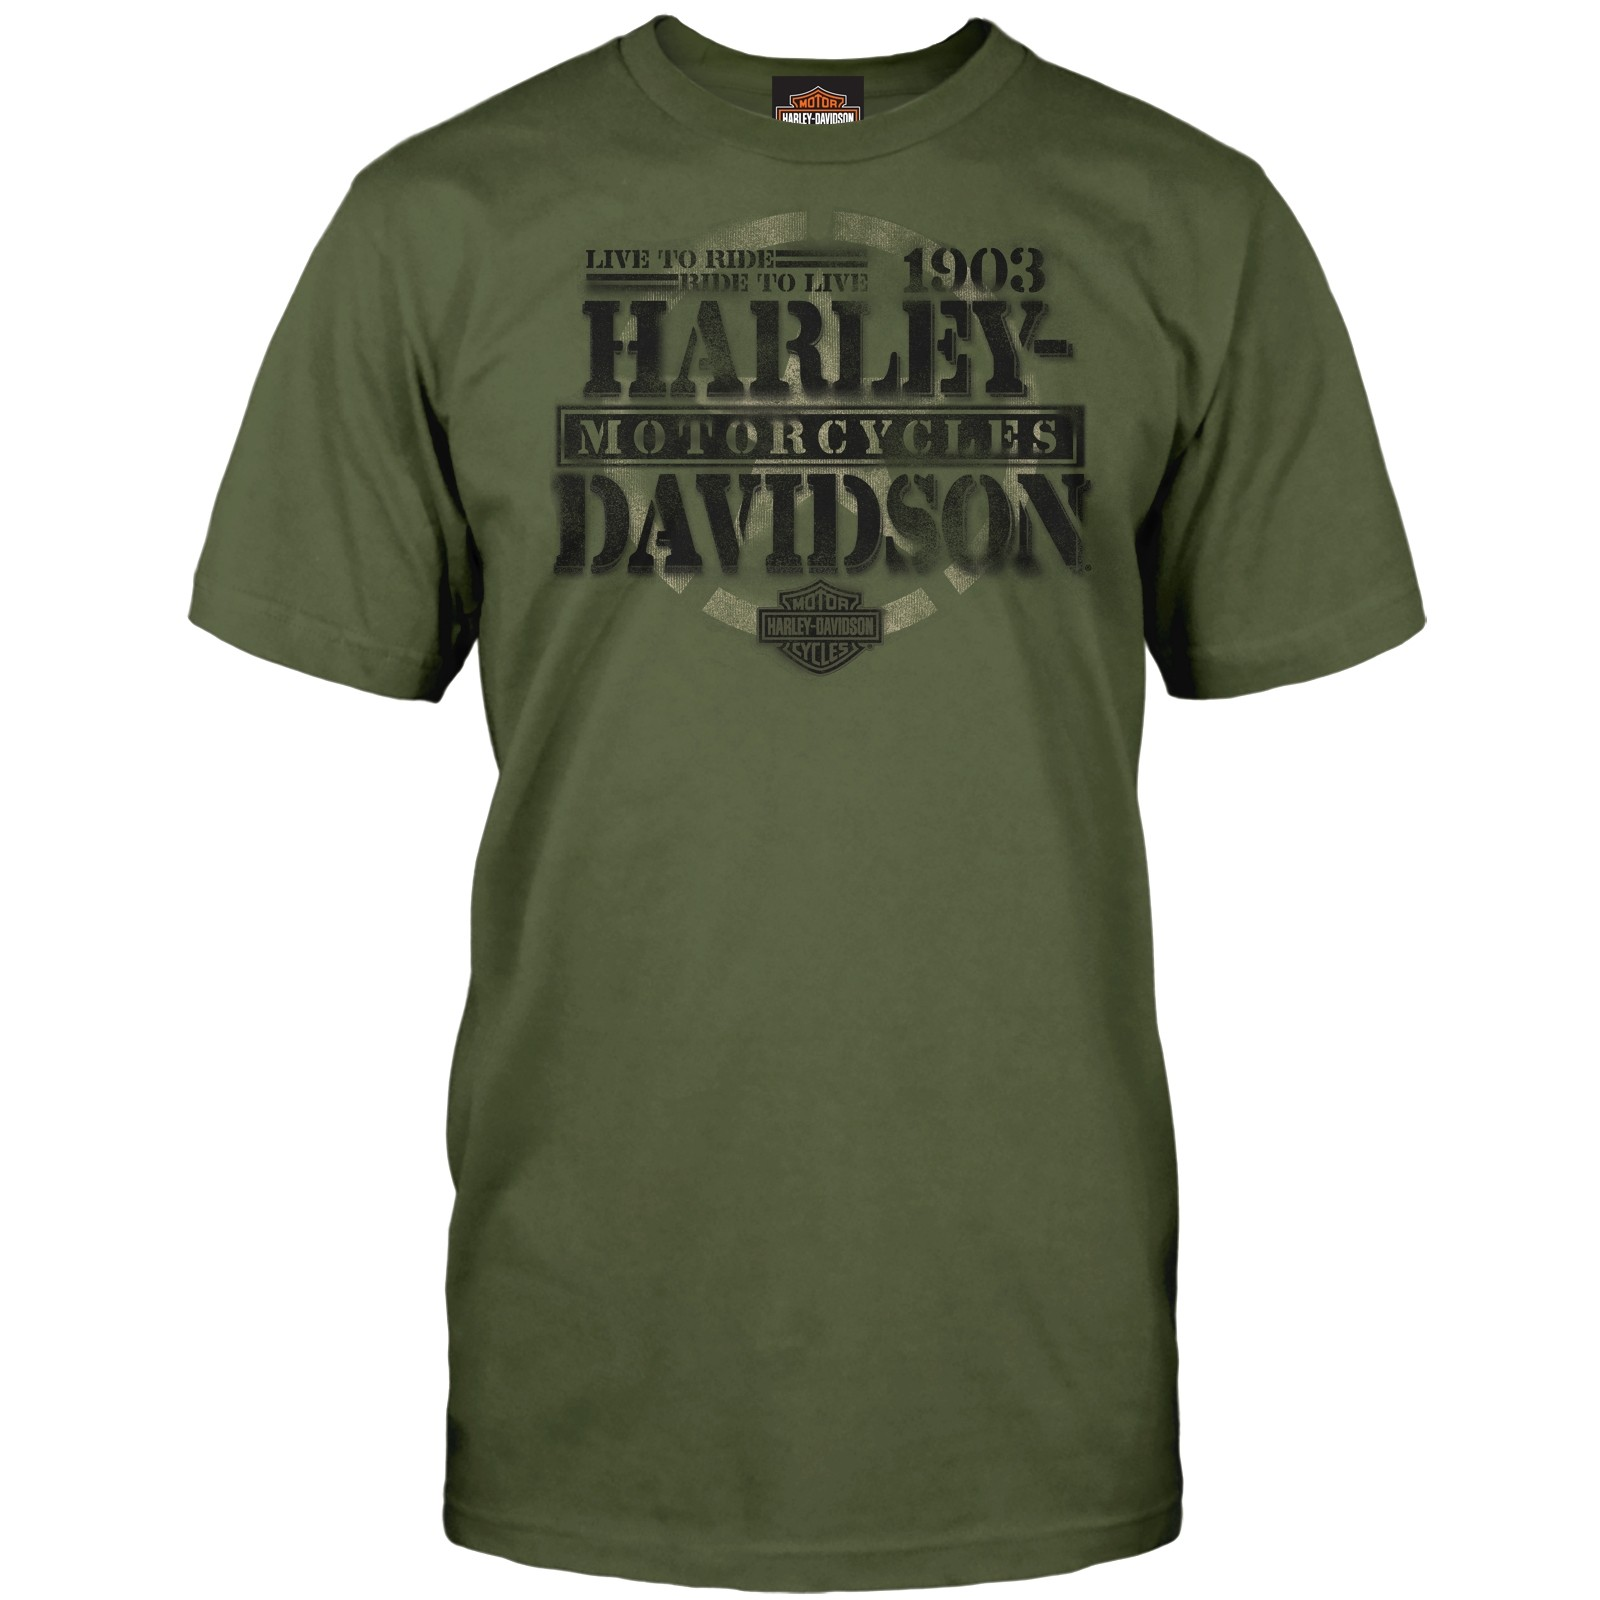 Harley-Davidson Military - Men's Graphic Short-Sleeve Tee - Overseas Tour | Honor